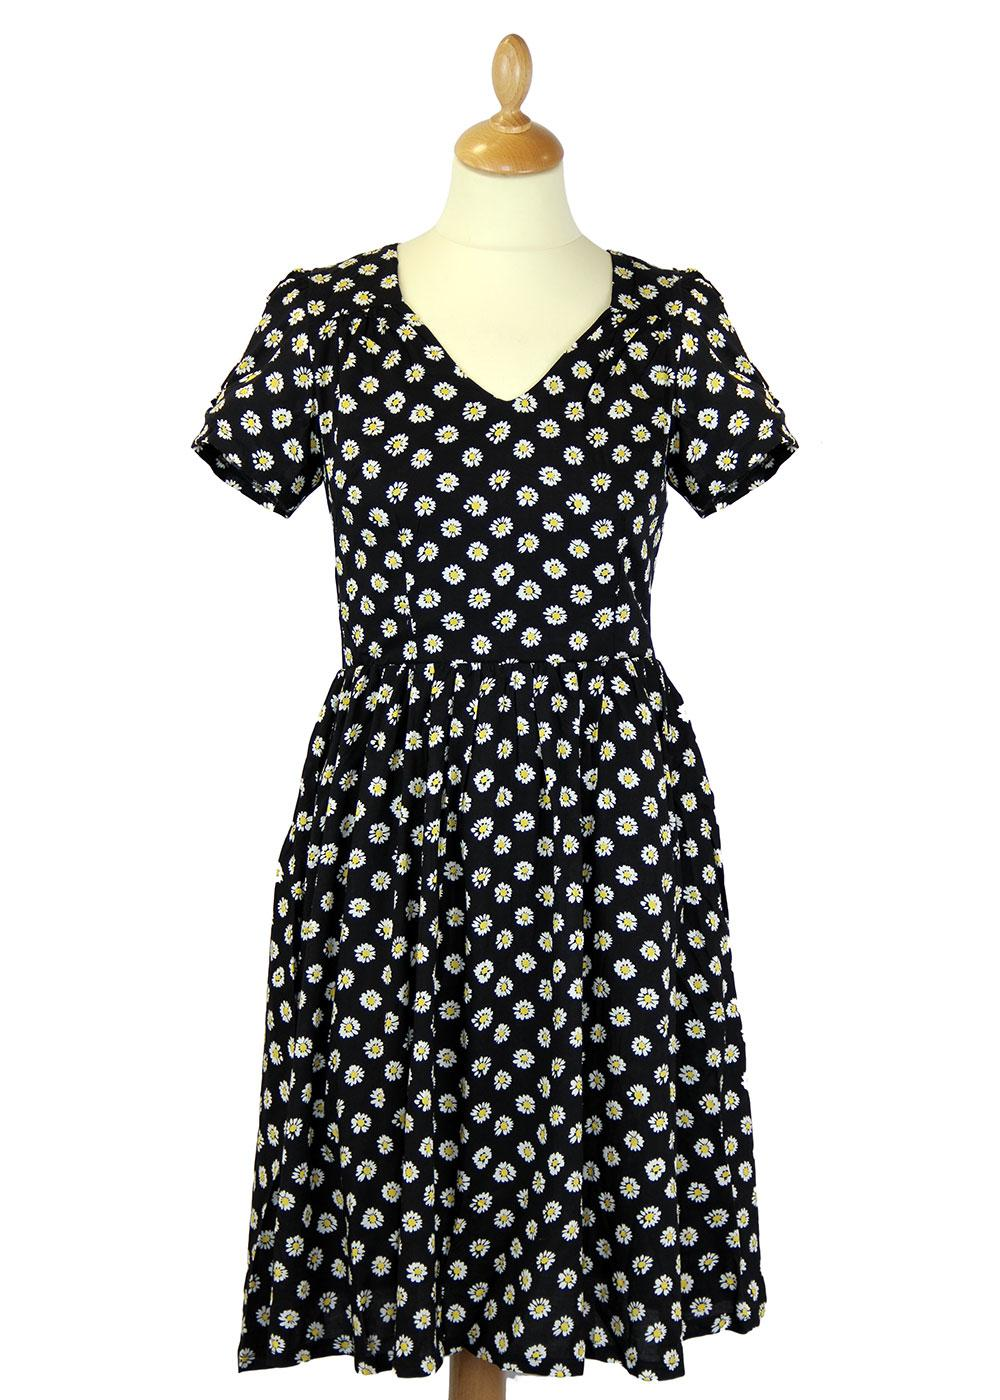 Fleur FRIDAY ON MY MIND Retro 50s Vintage Dress B